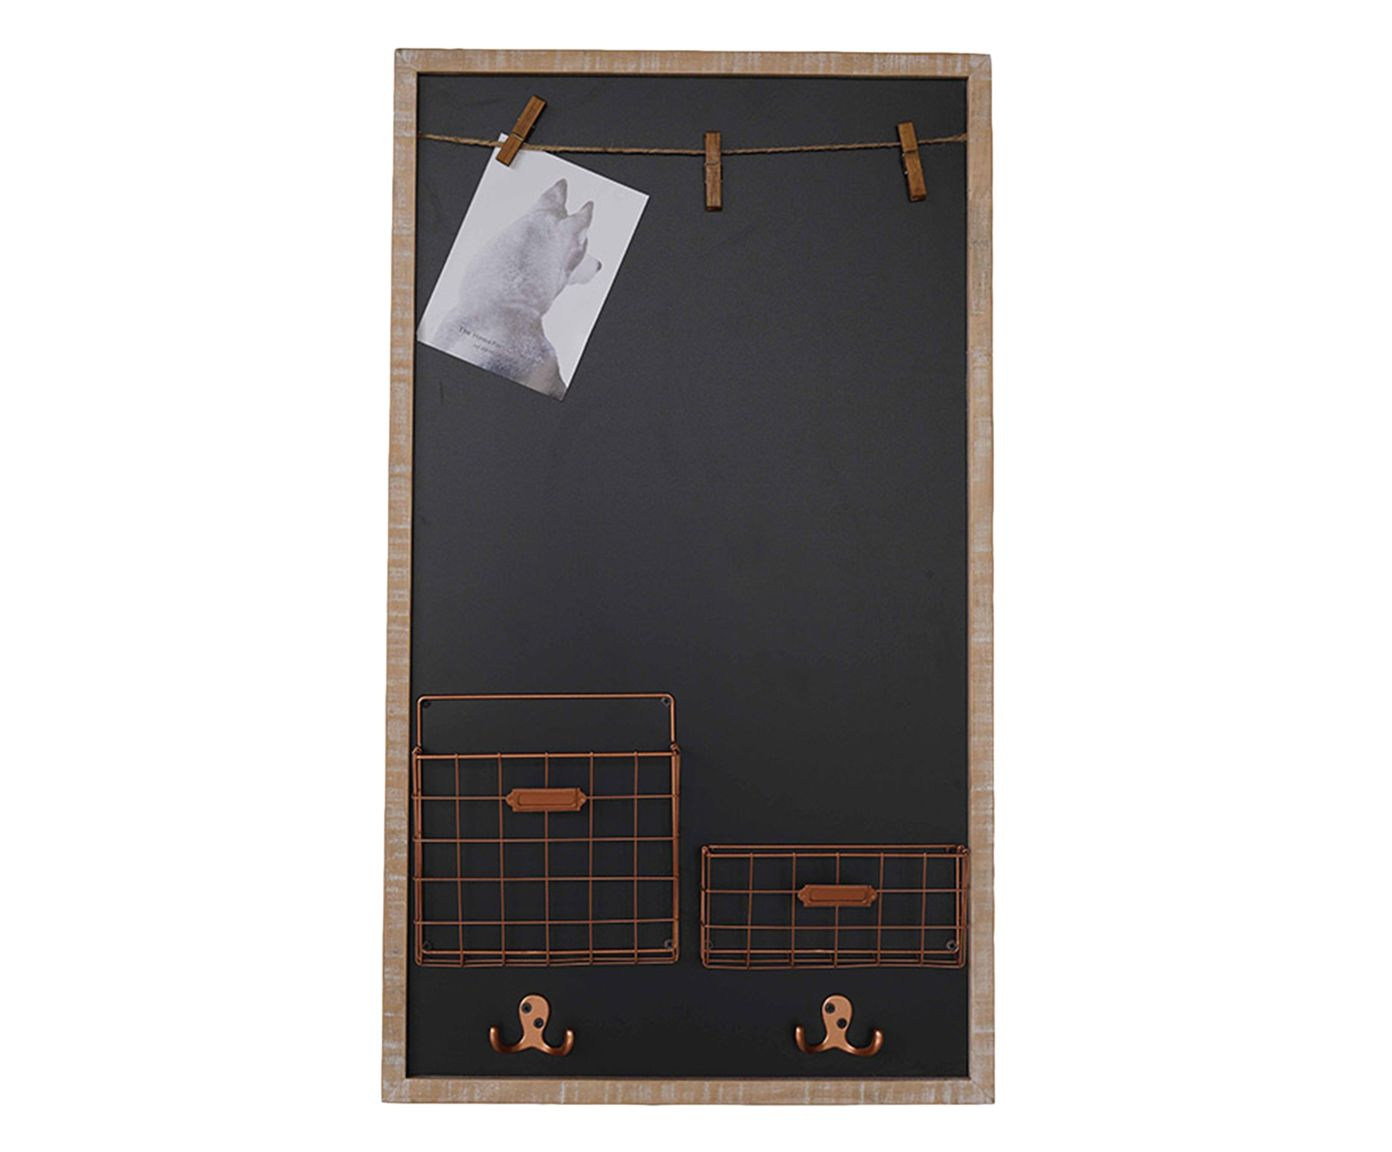 Quadro Negro Office - 47X81X9cm | Westwing.com.br